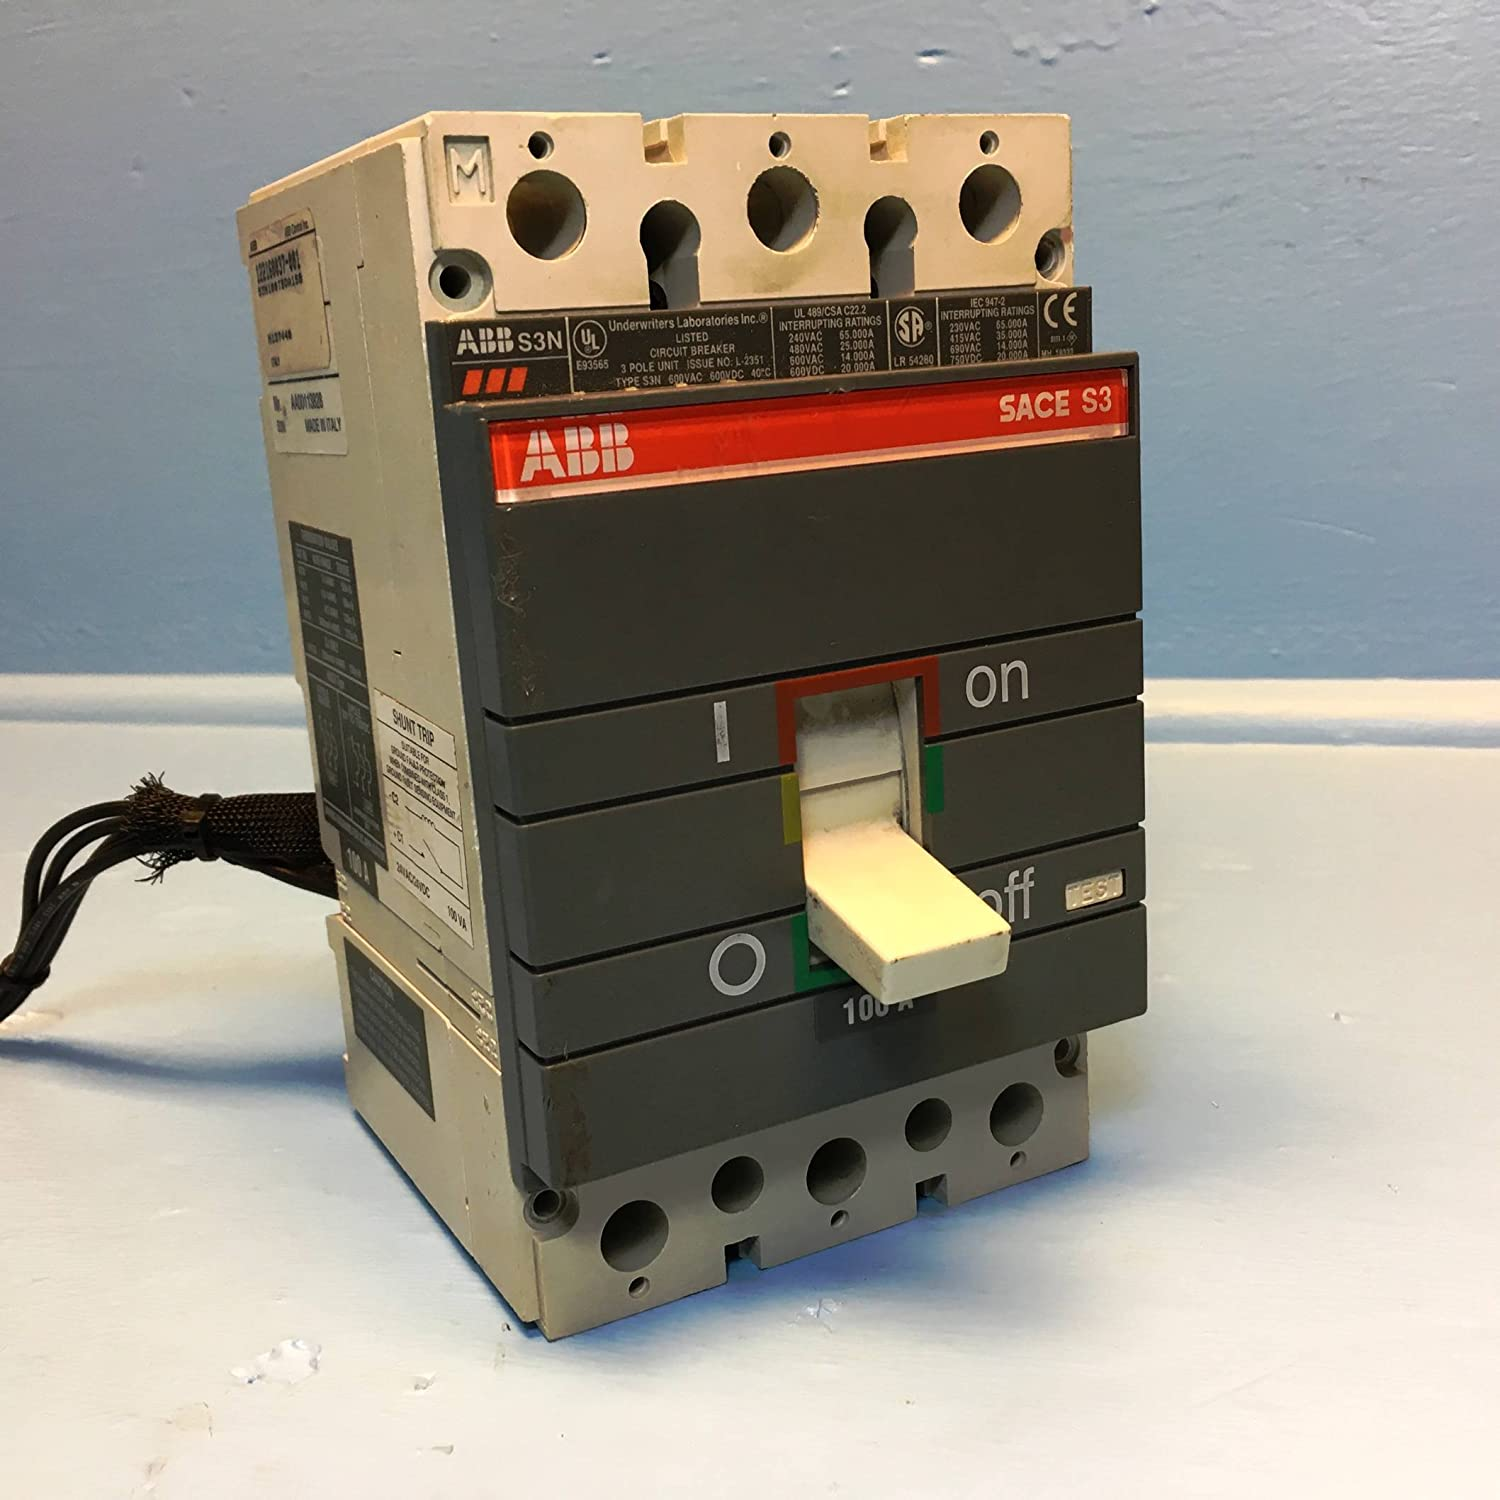 Abb Type S3n Sace S3 100a Circuit Breaker W Aux Shunt 3 Pole 600 Wiring Diagram Power Vac 100 Amp Industrial Scientific